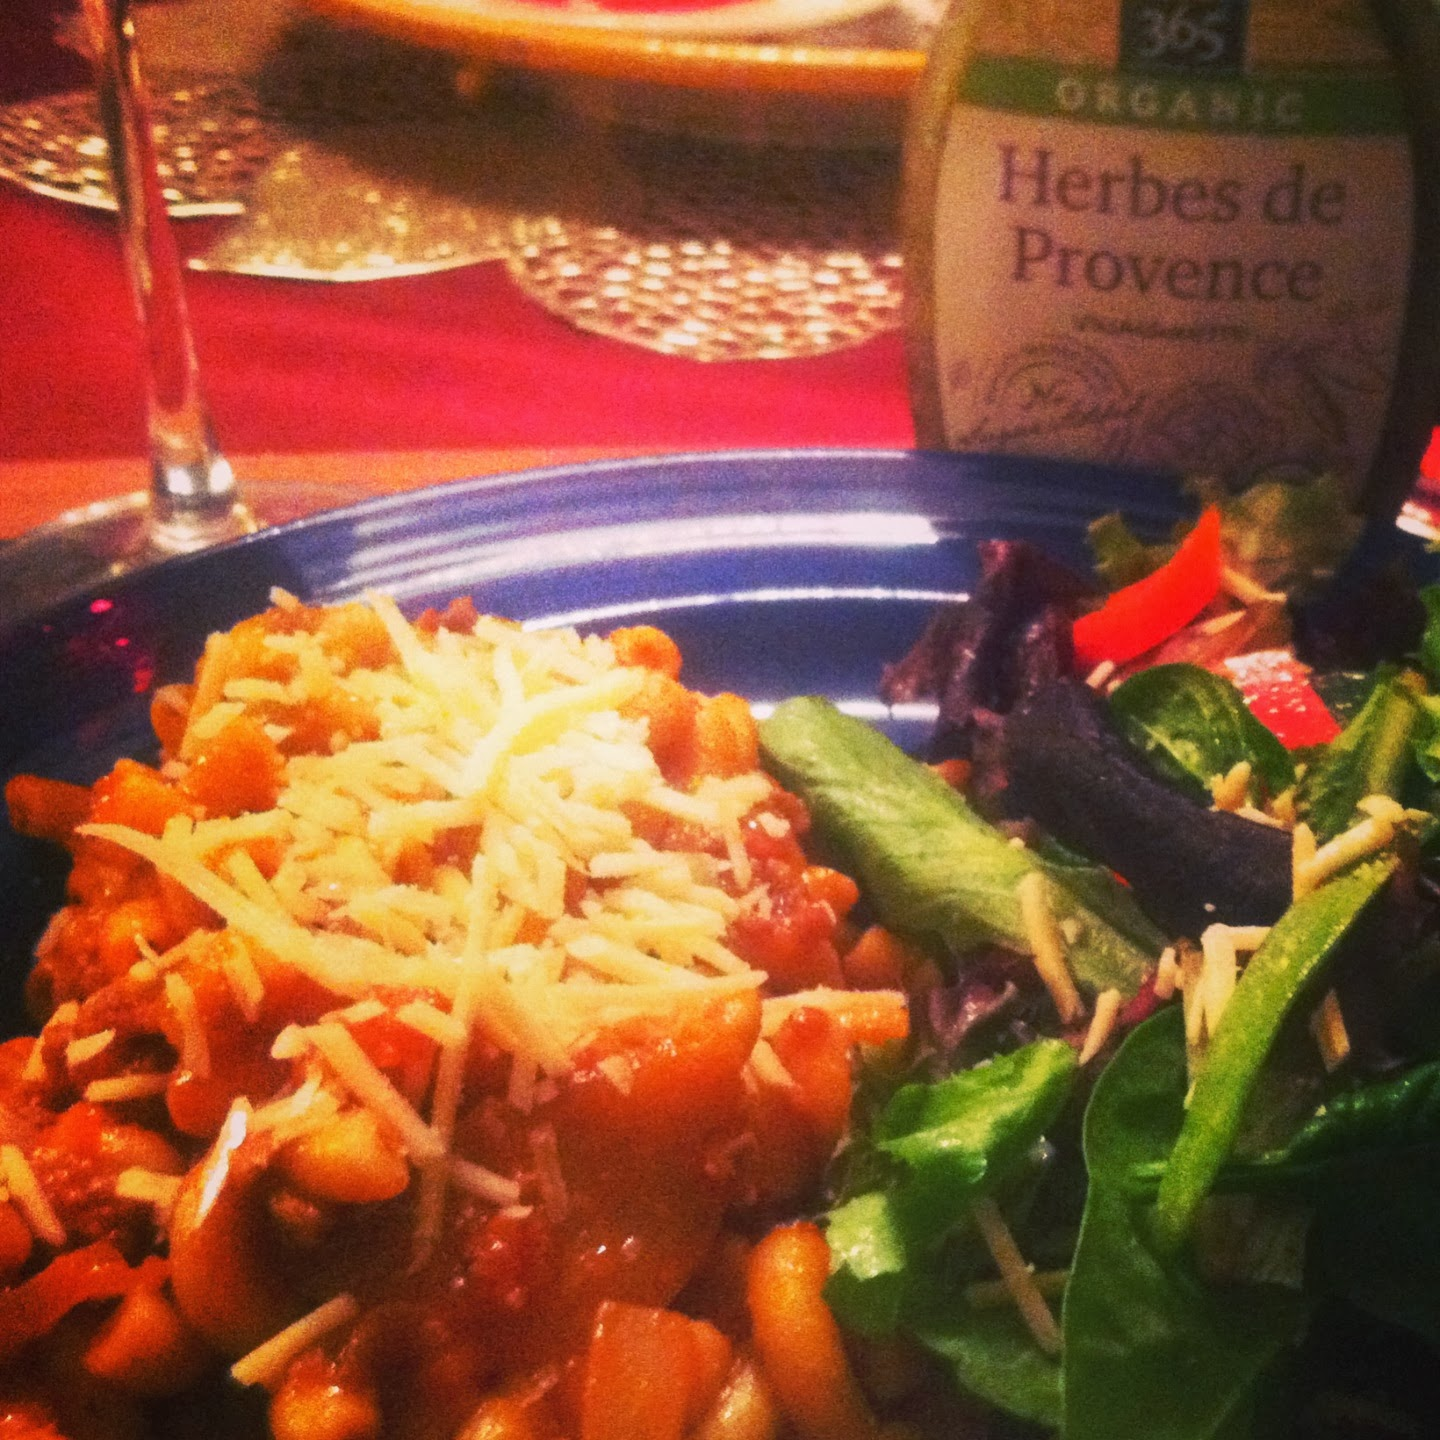 pasta with meat sauce served with green salad and Herbes de Provences dressing